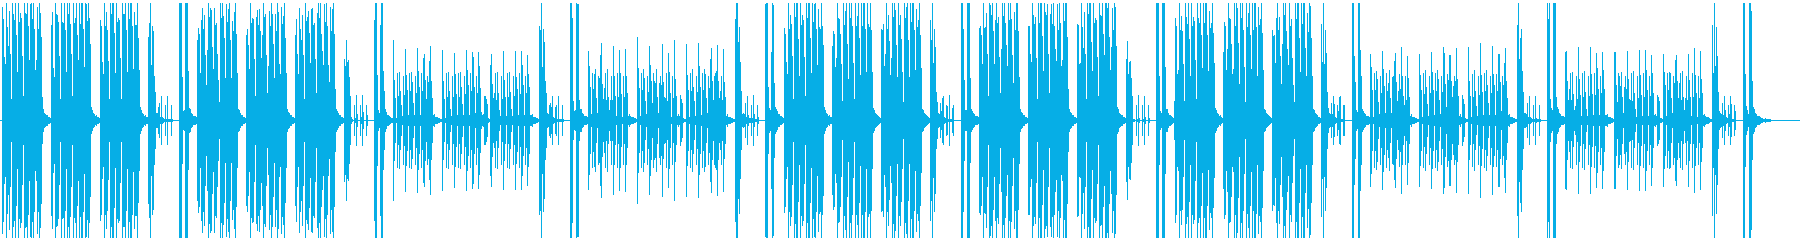 Light and comical BGM's reproduced waveform